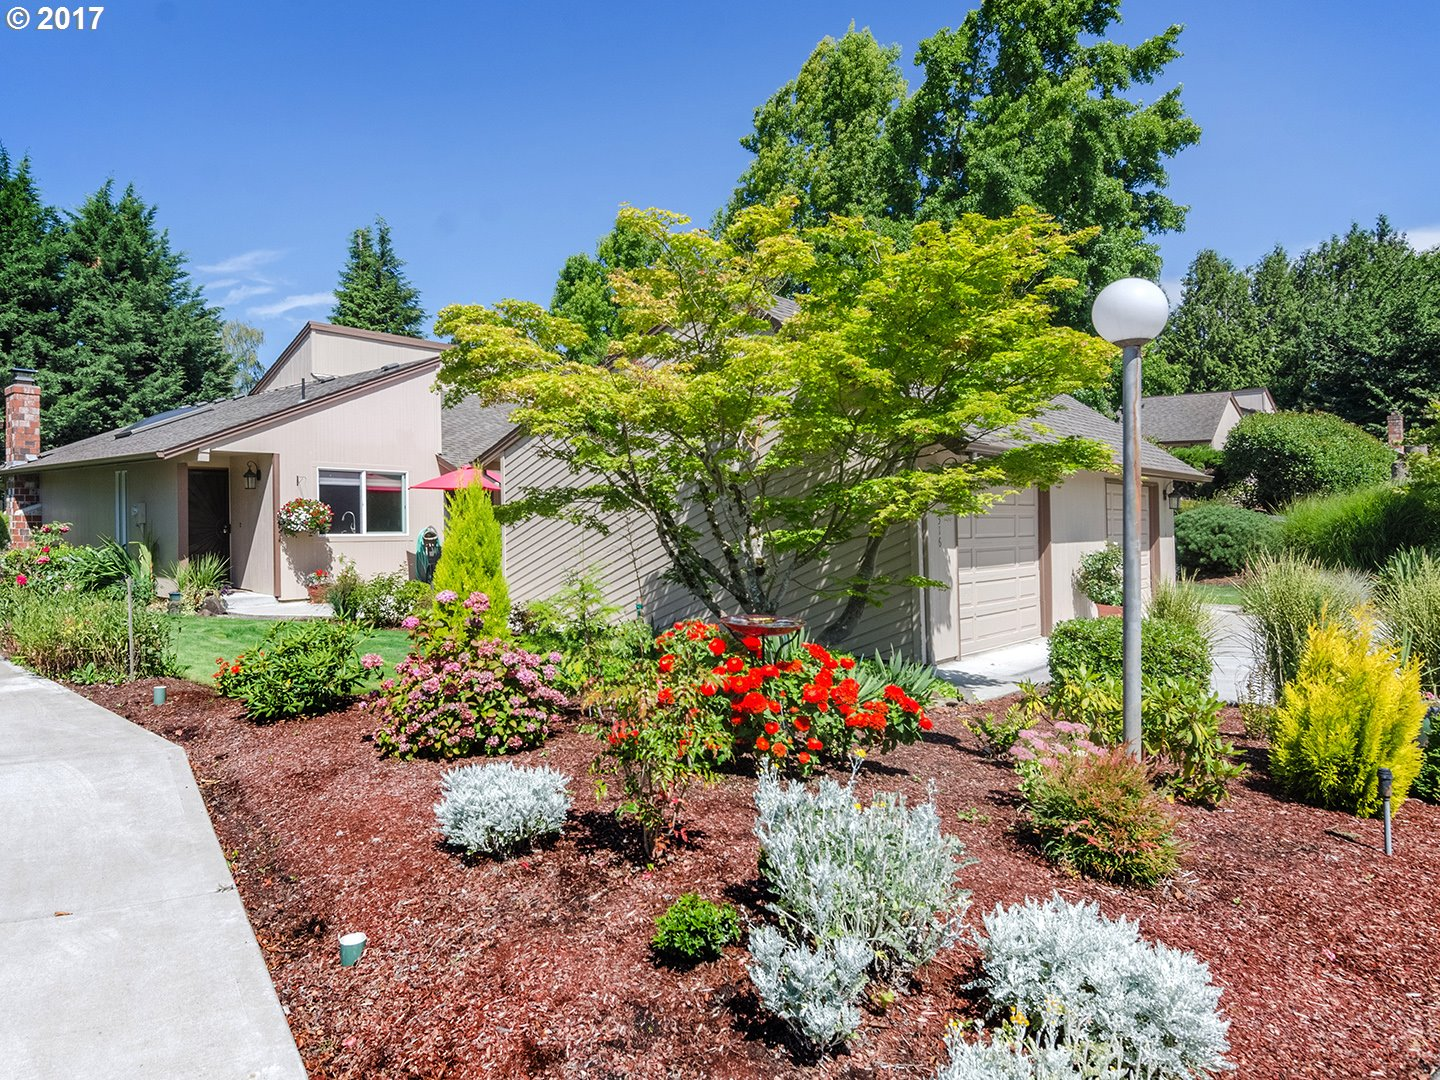 316 NW 77TH ST, Vancouver, WA 98665